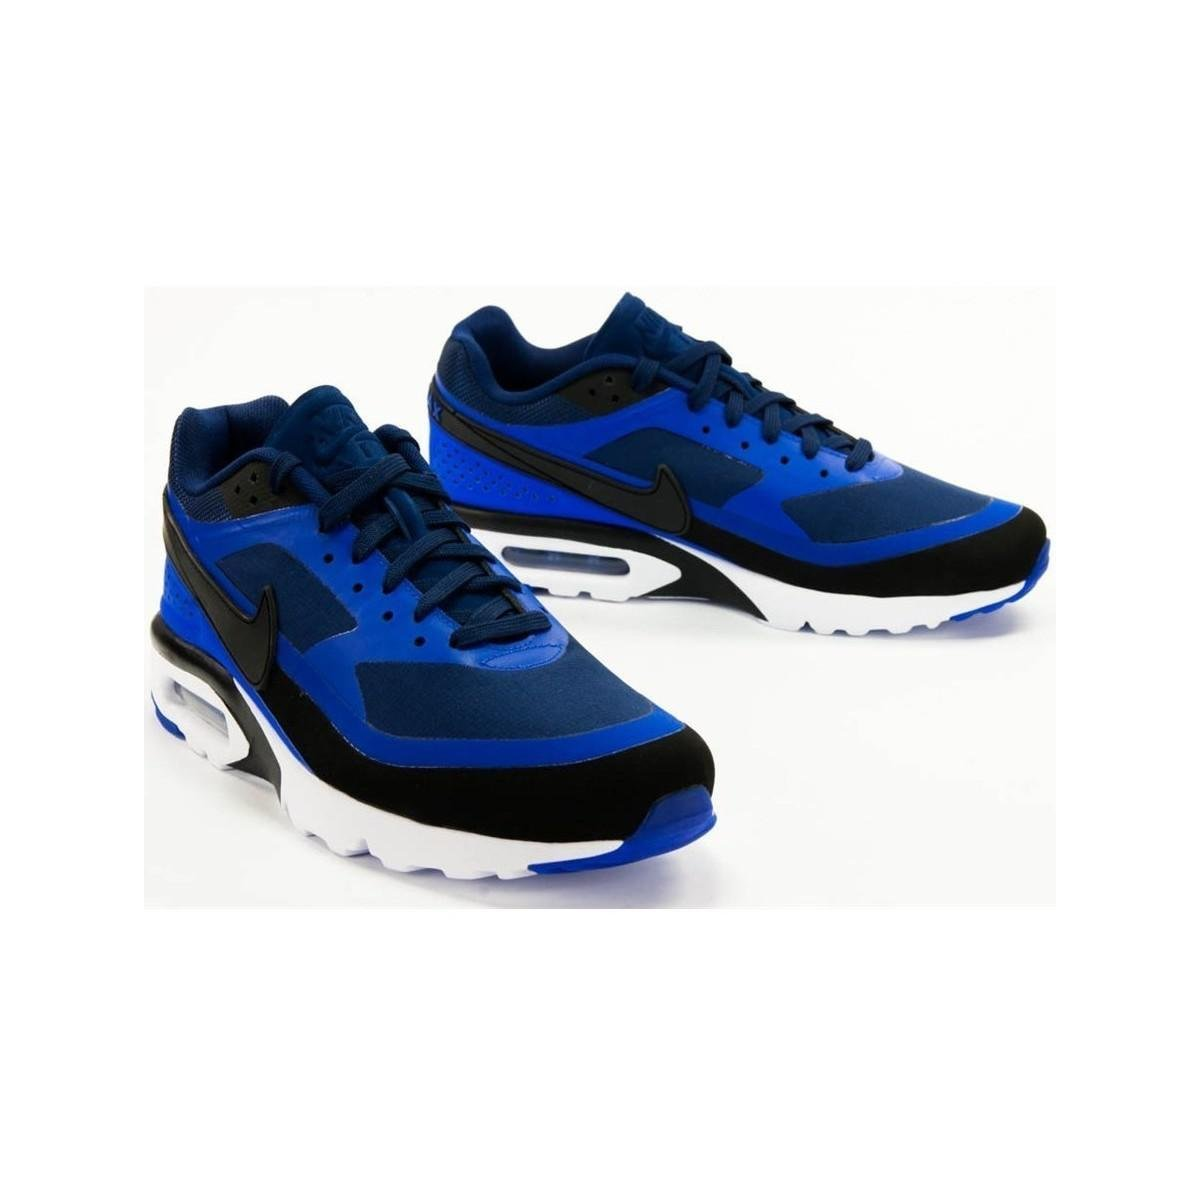 362a76fc7e Nike Air Max Bw Ultra 819475 401 Men's Shoes (trainers) In Black in ...